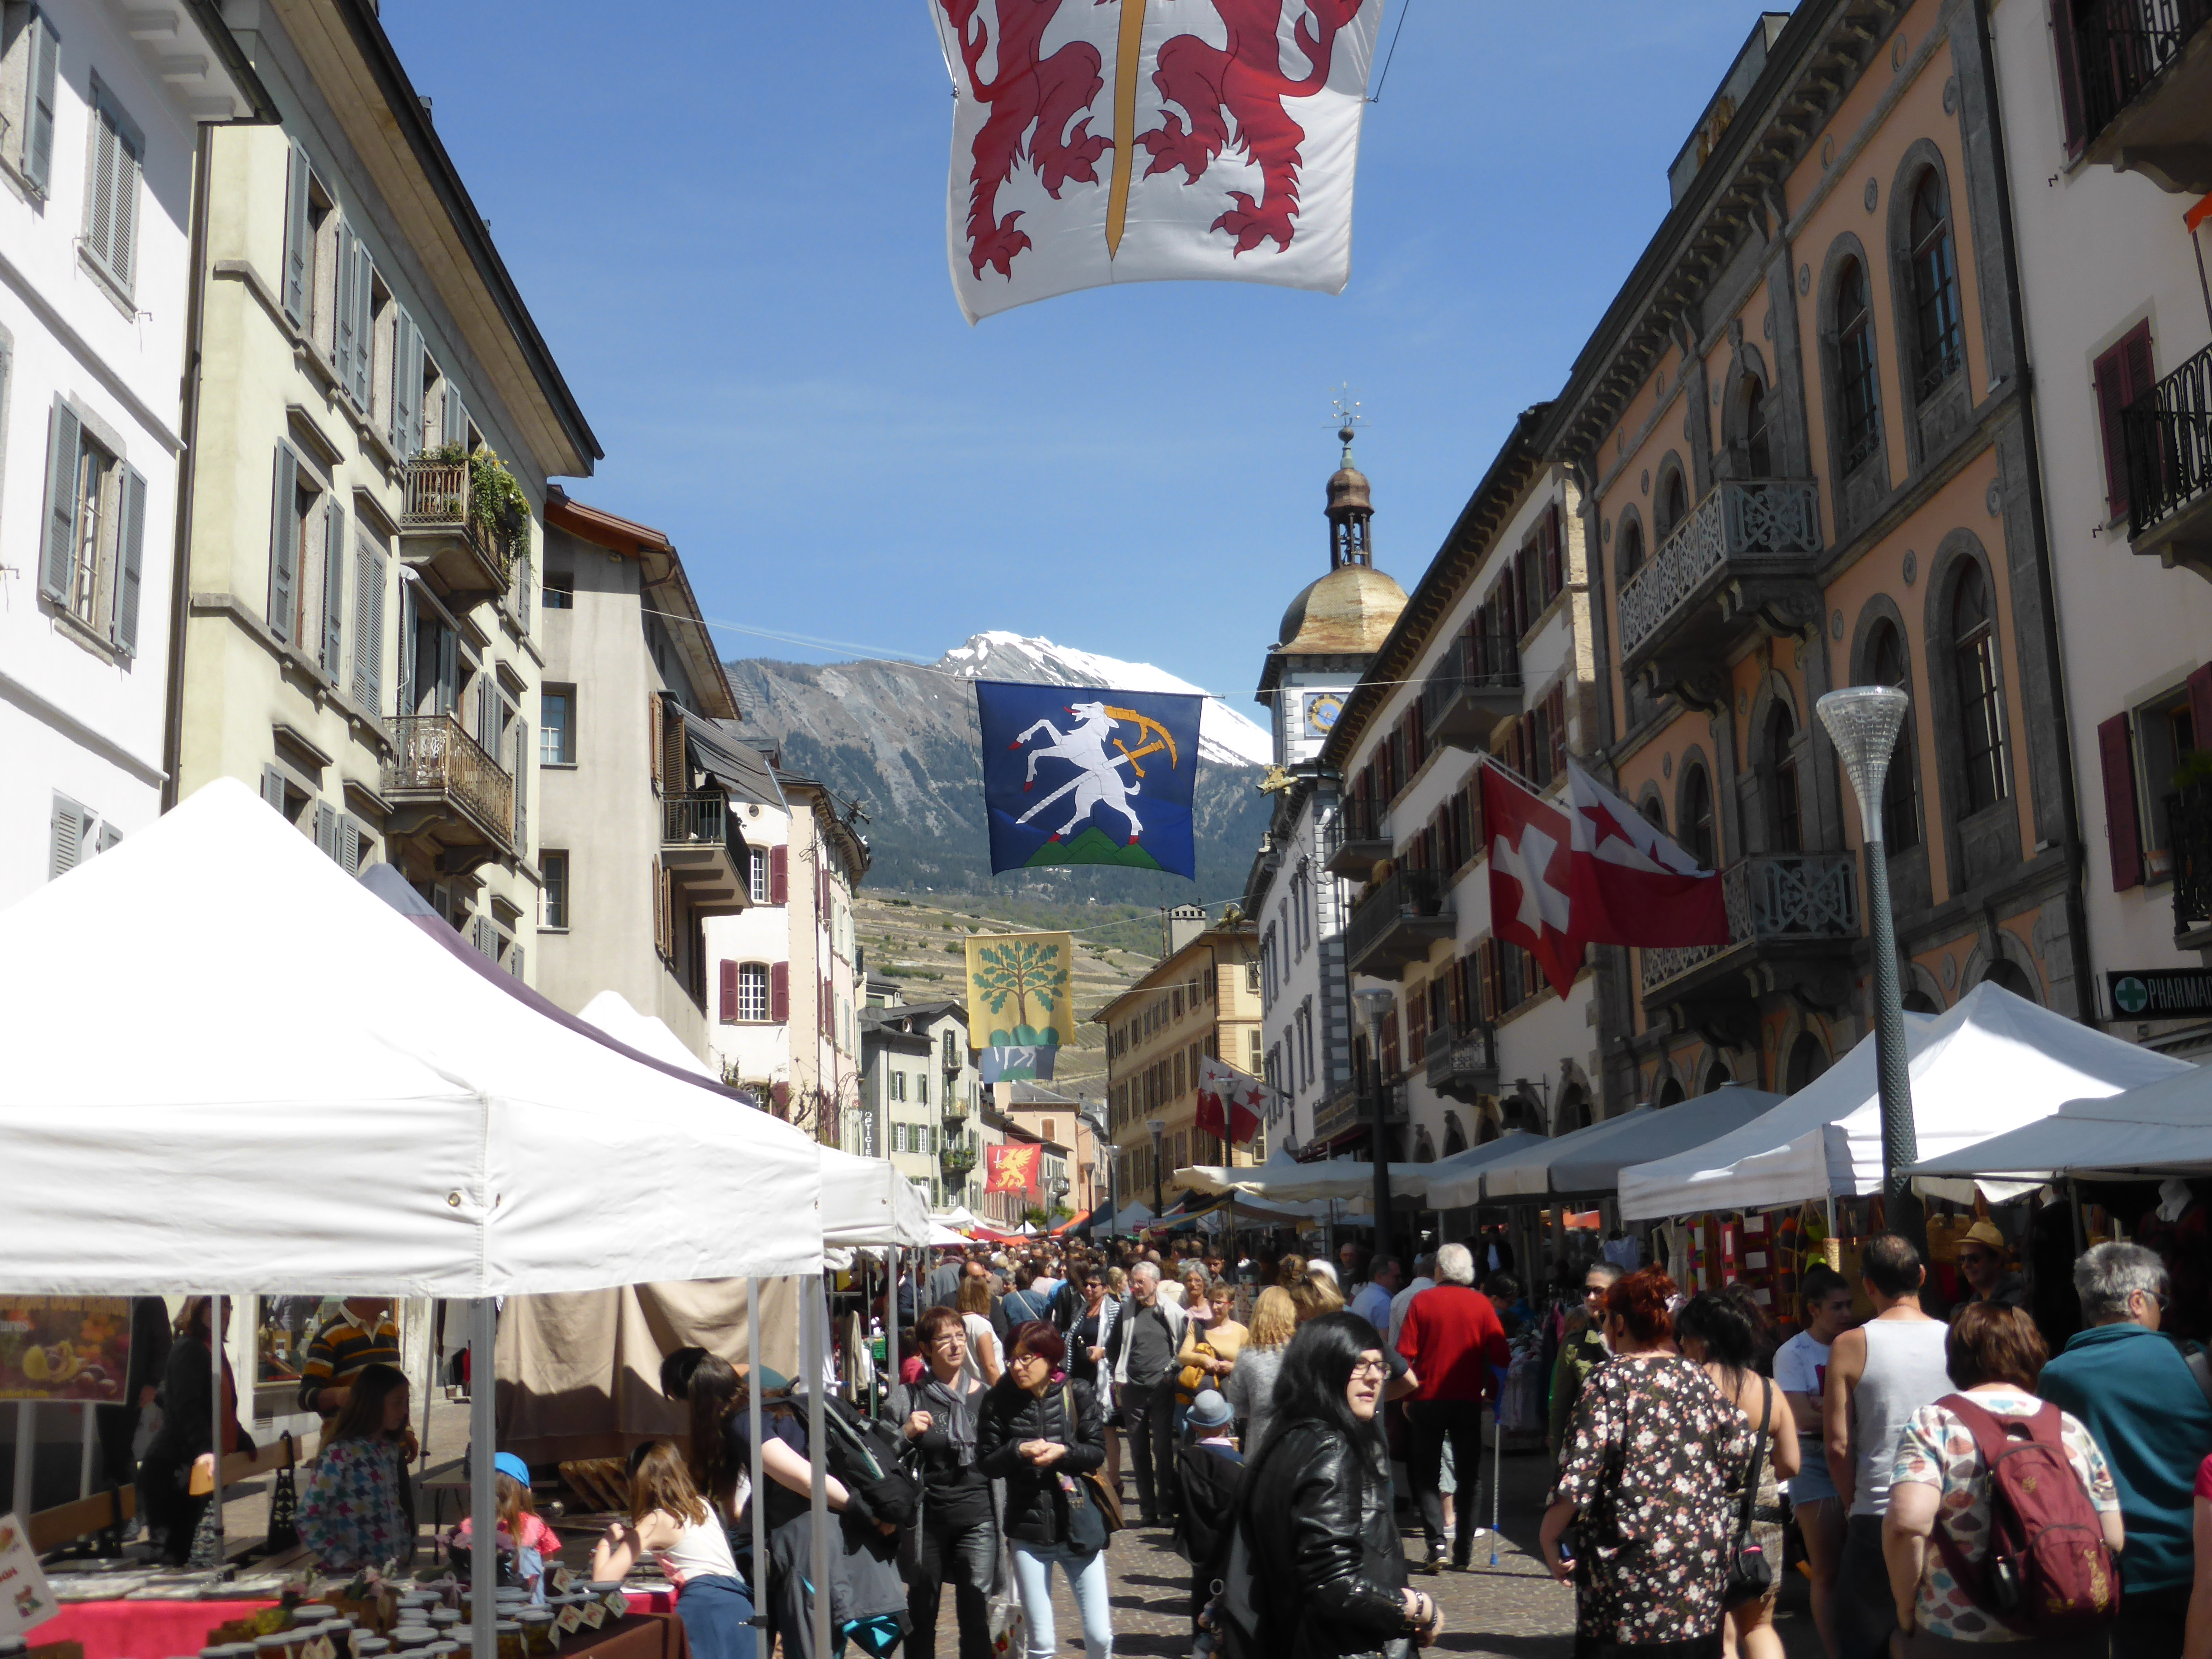 Friday Farmer's Market in Sion, Valais